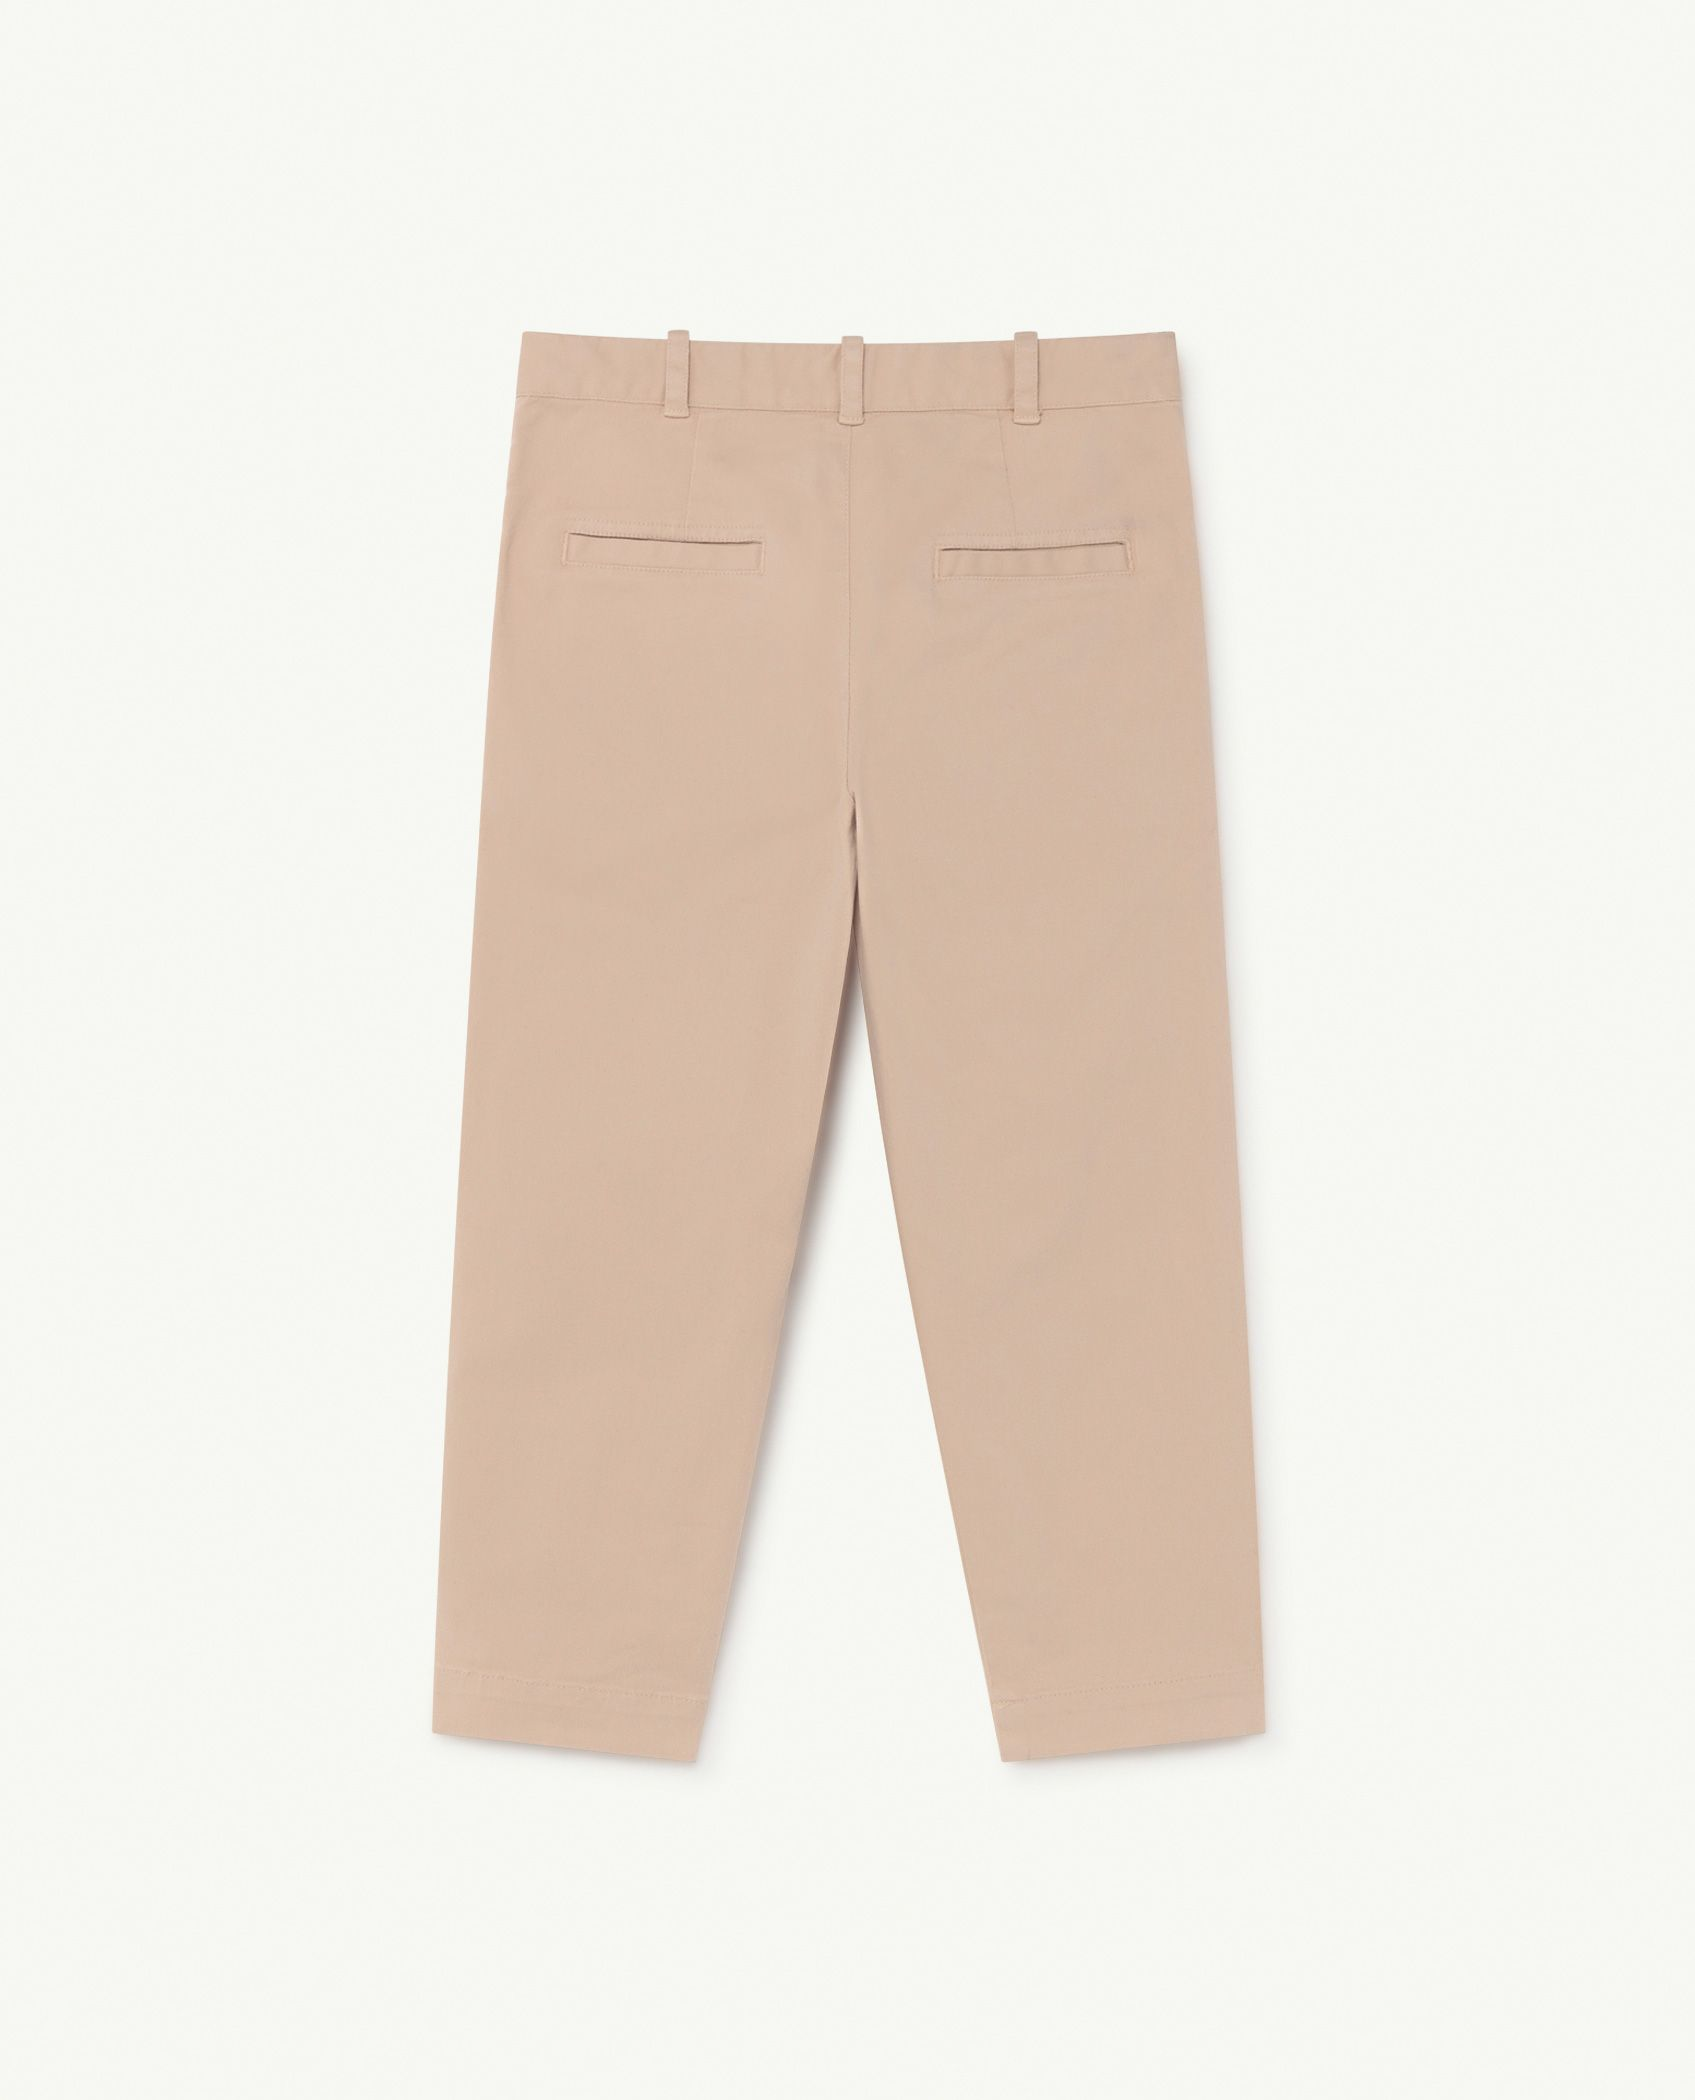 Soft Pink Logo Camel Trousers img-2